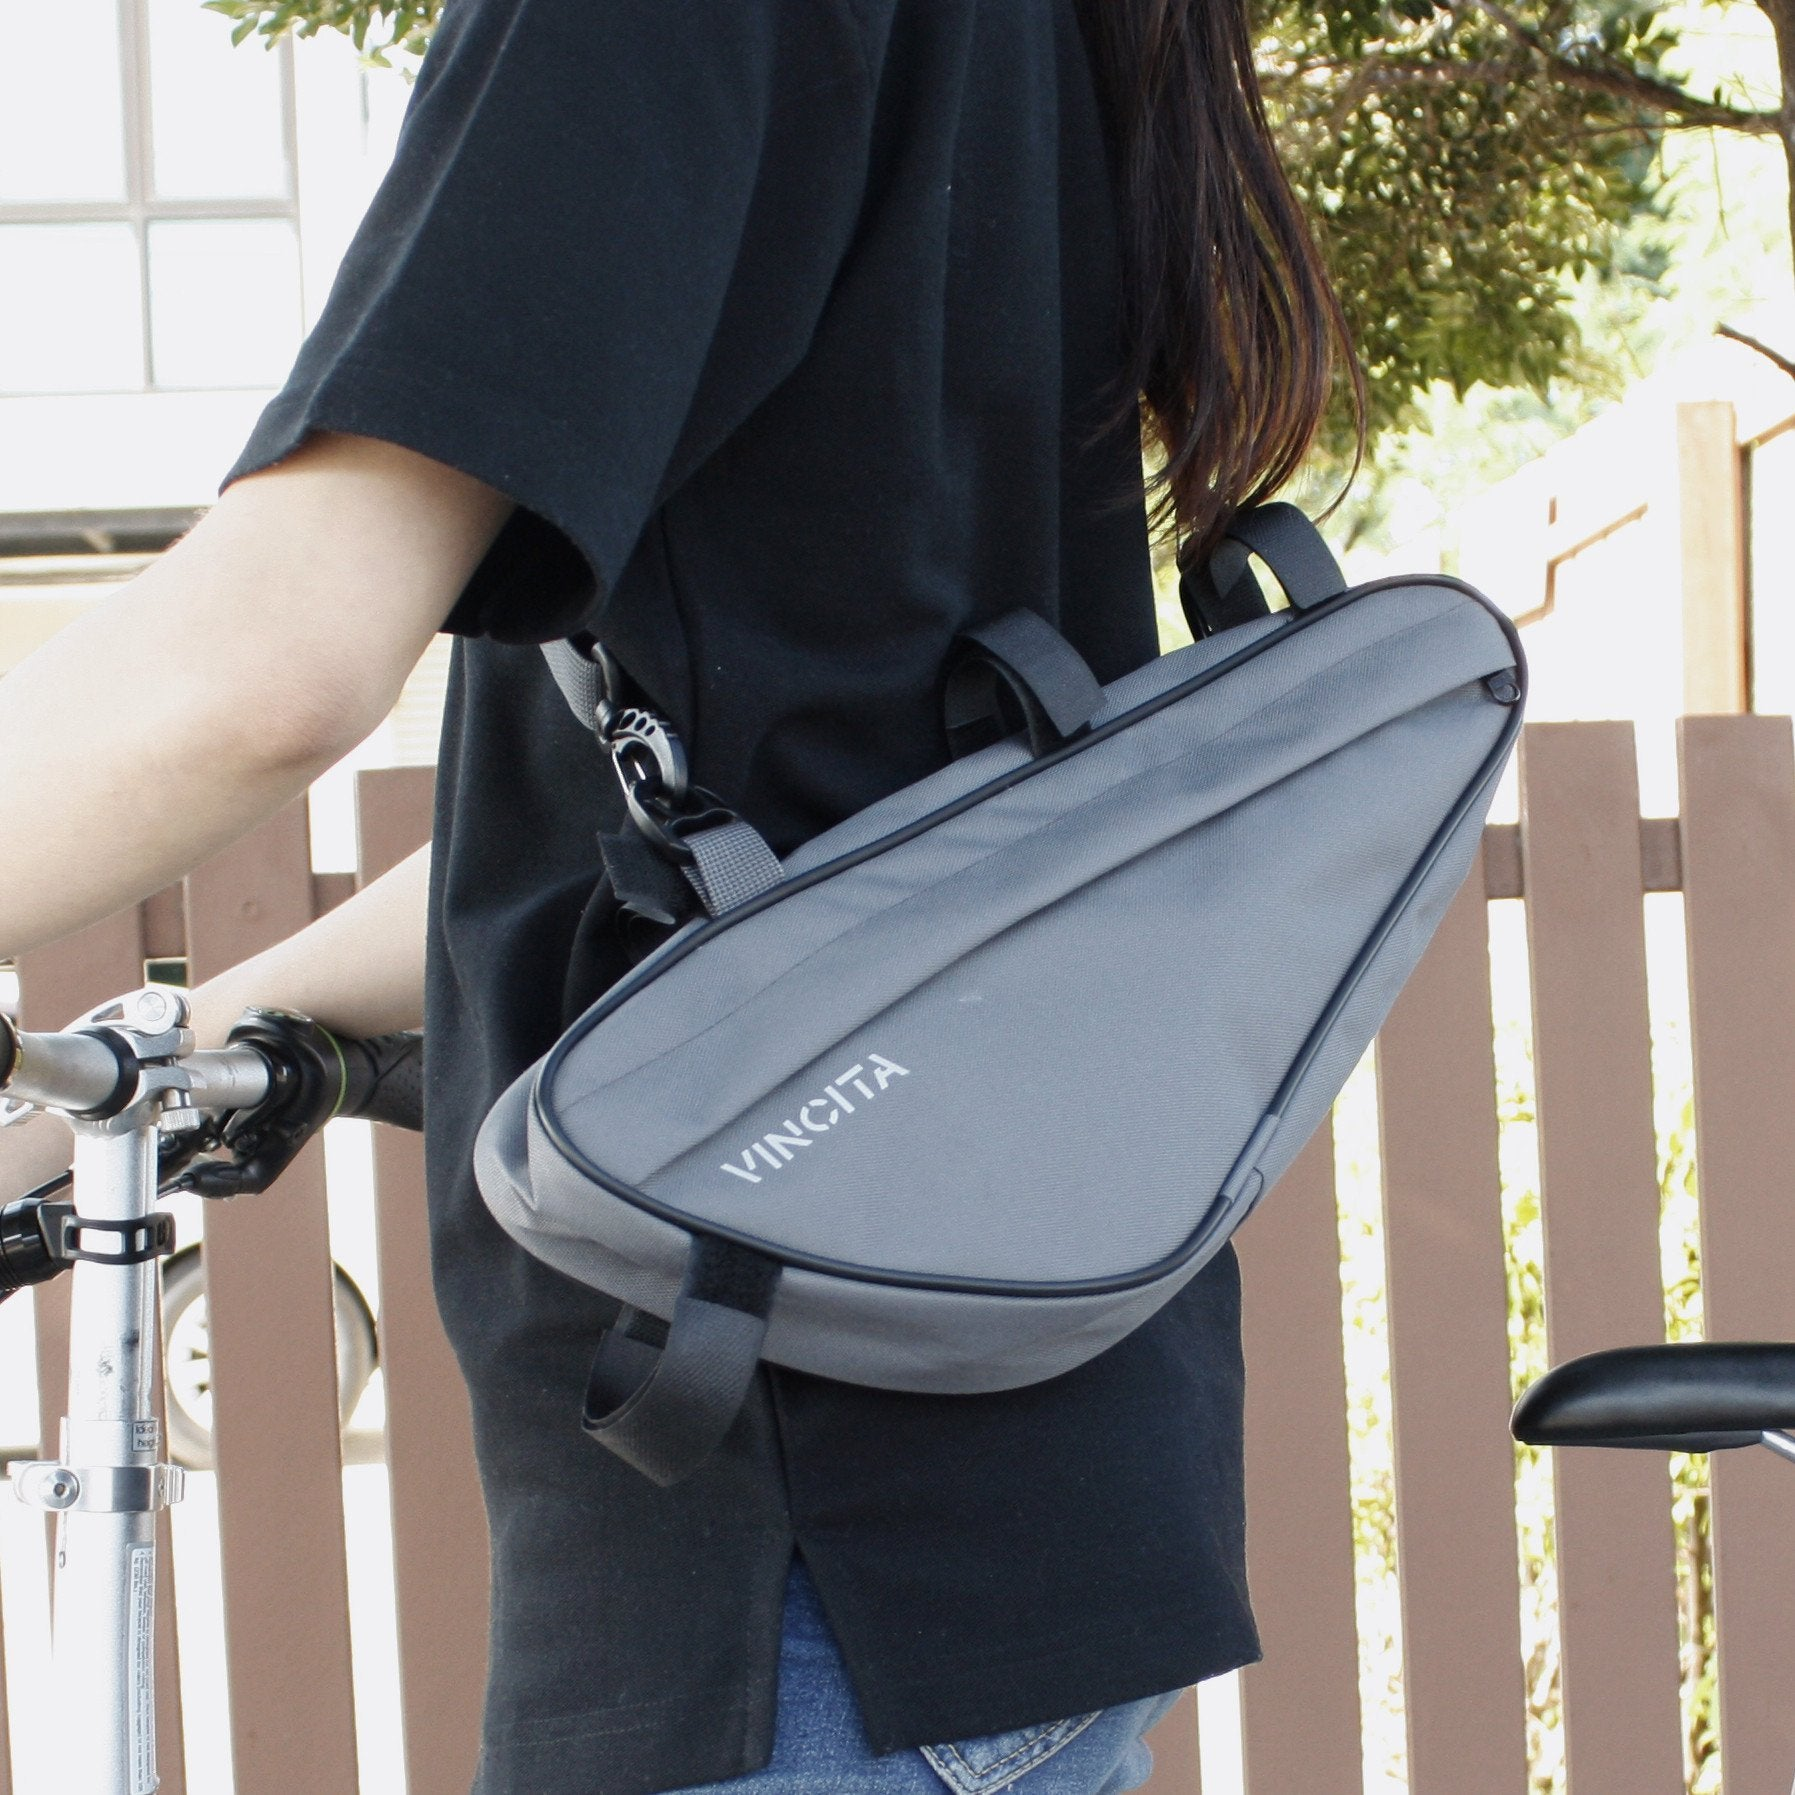 Vincita Co., Ltd. bicycle bag B024L